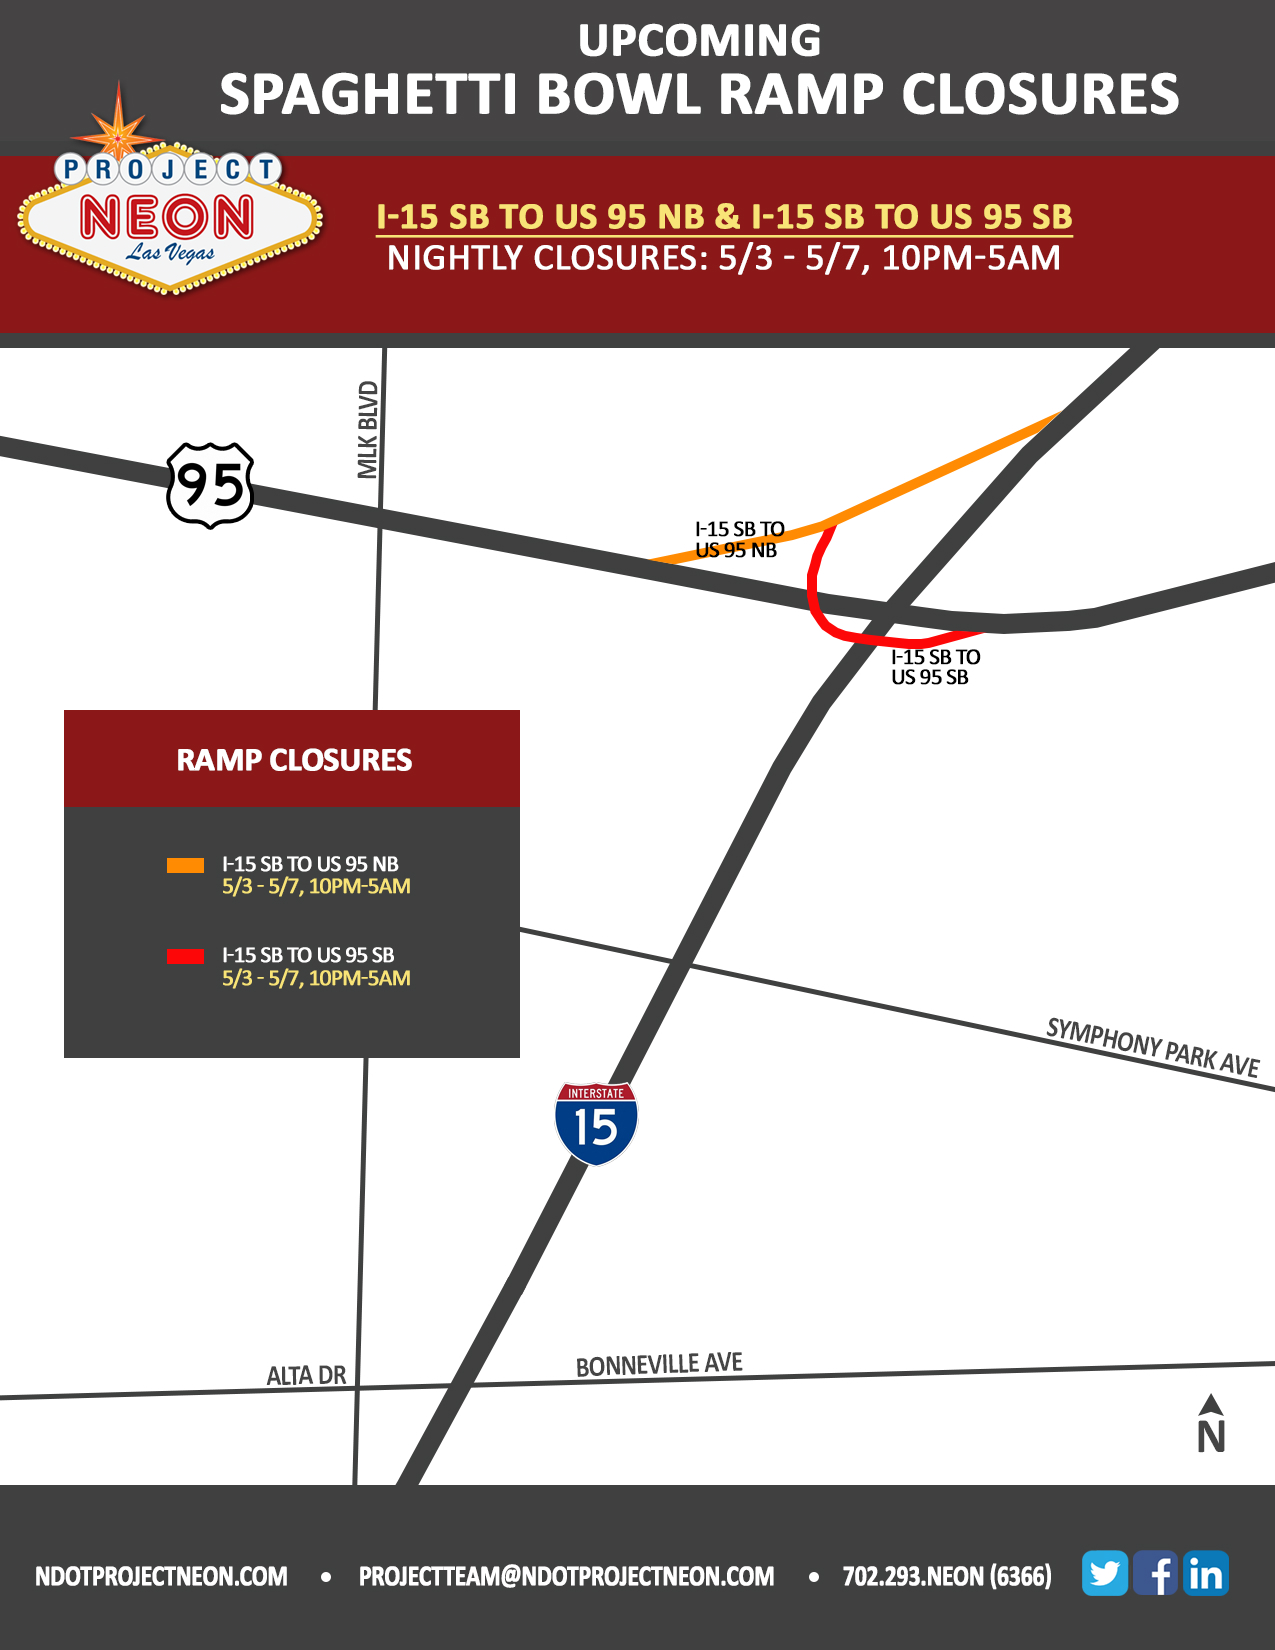 I-15 SB to US 95 NB-SB_5.3.19 to 5.7.19